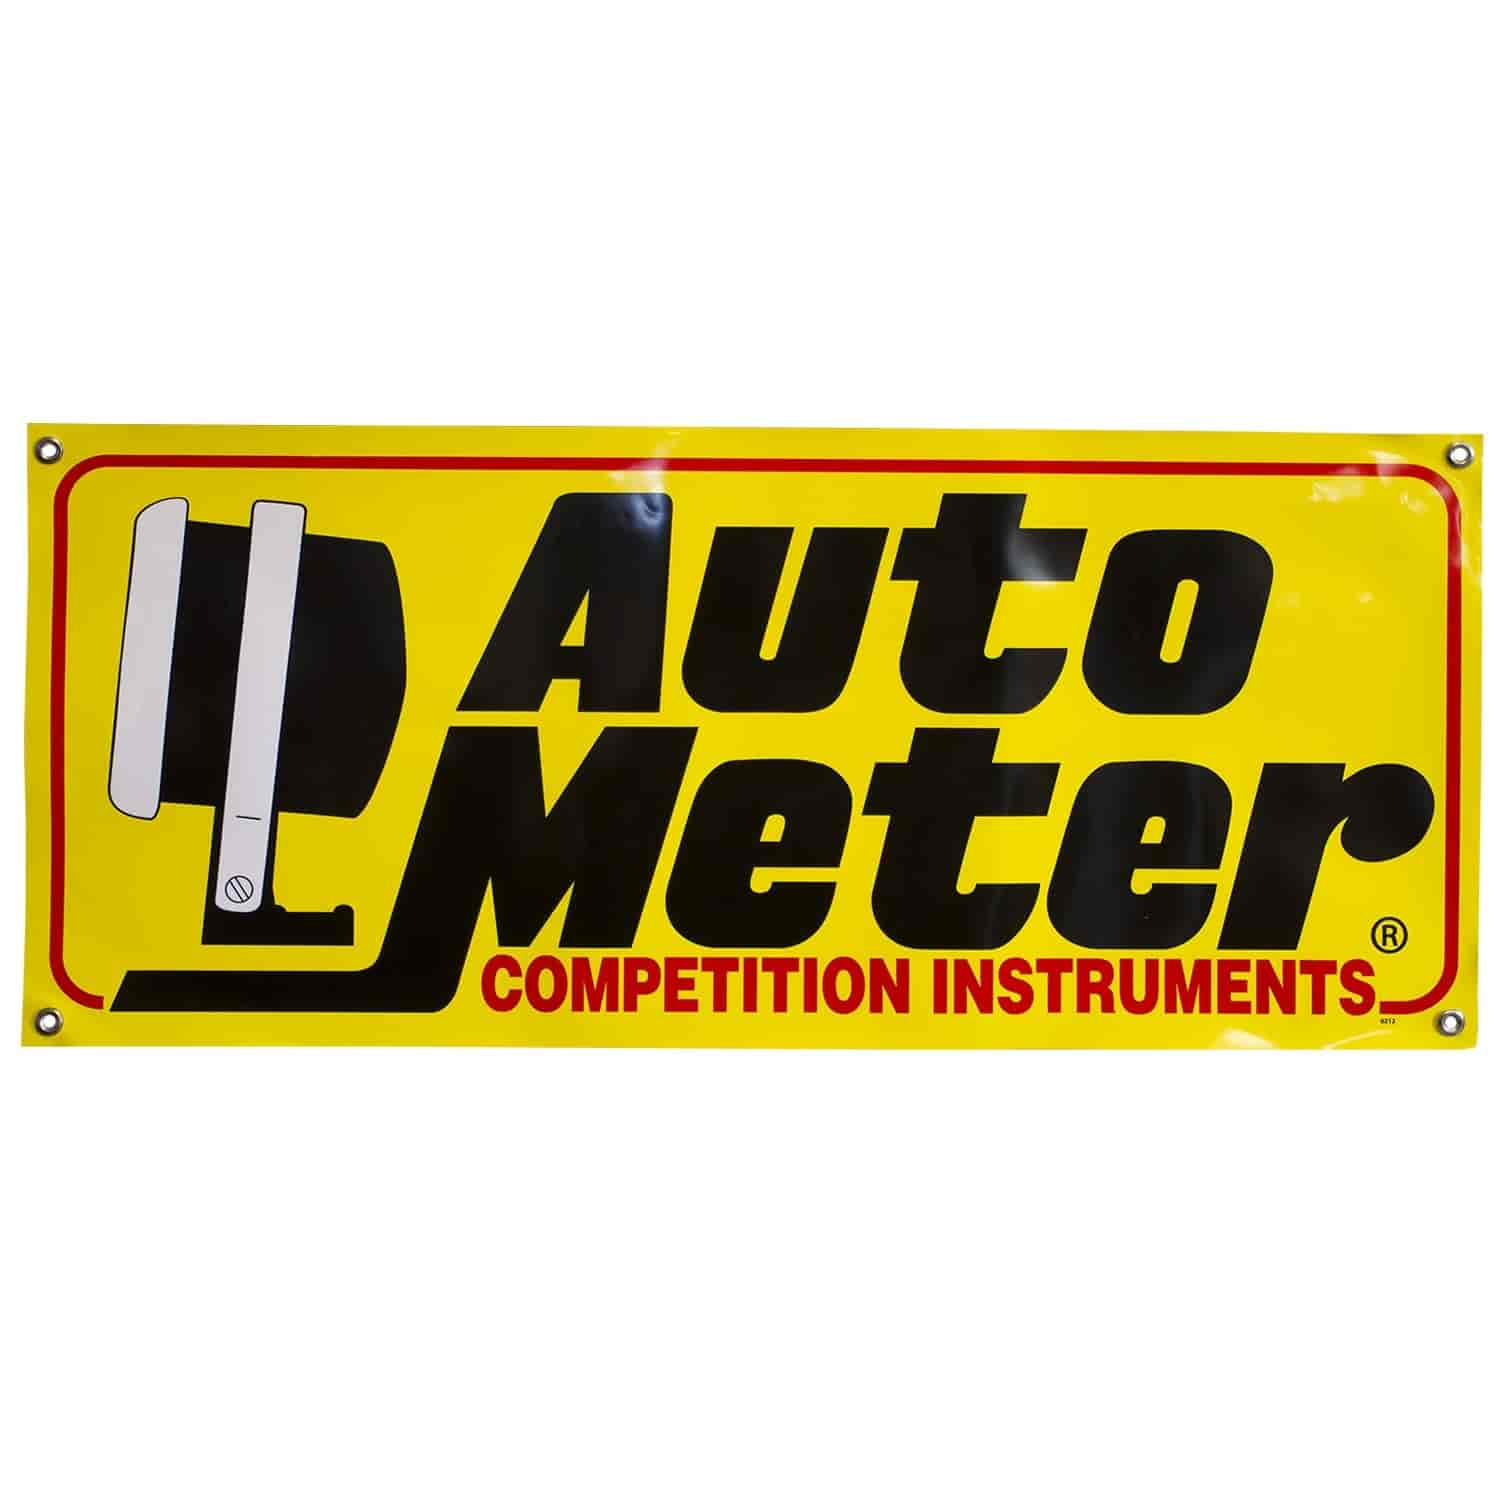 Auto Meter 0212 - Auto Meter Apparel, Decals & Banners